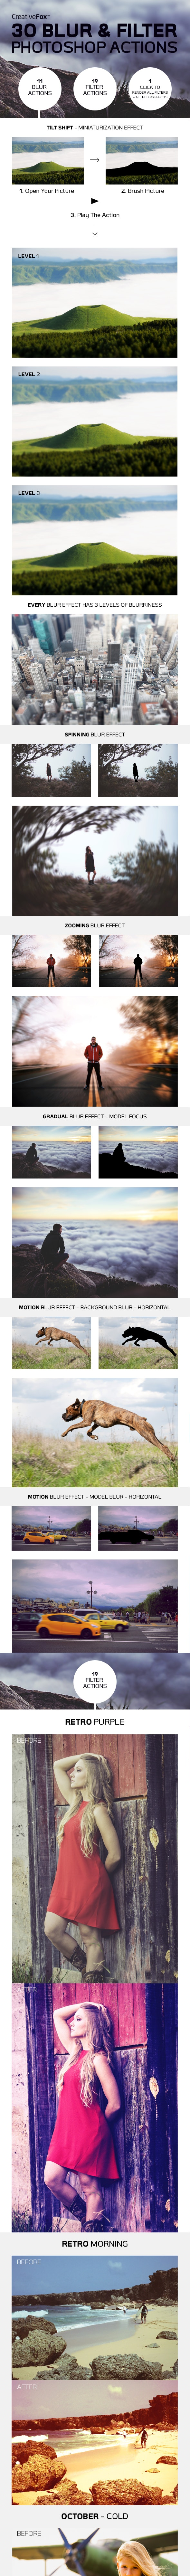 30 Blur & Filter Photoshop Actions - Photo Effects Actions